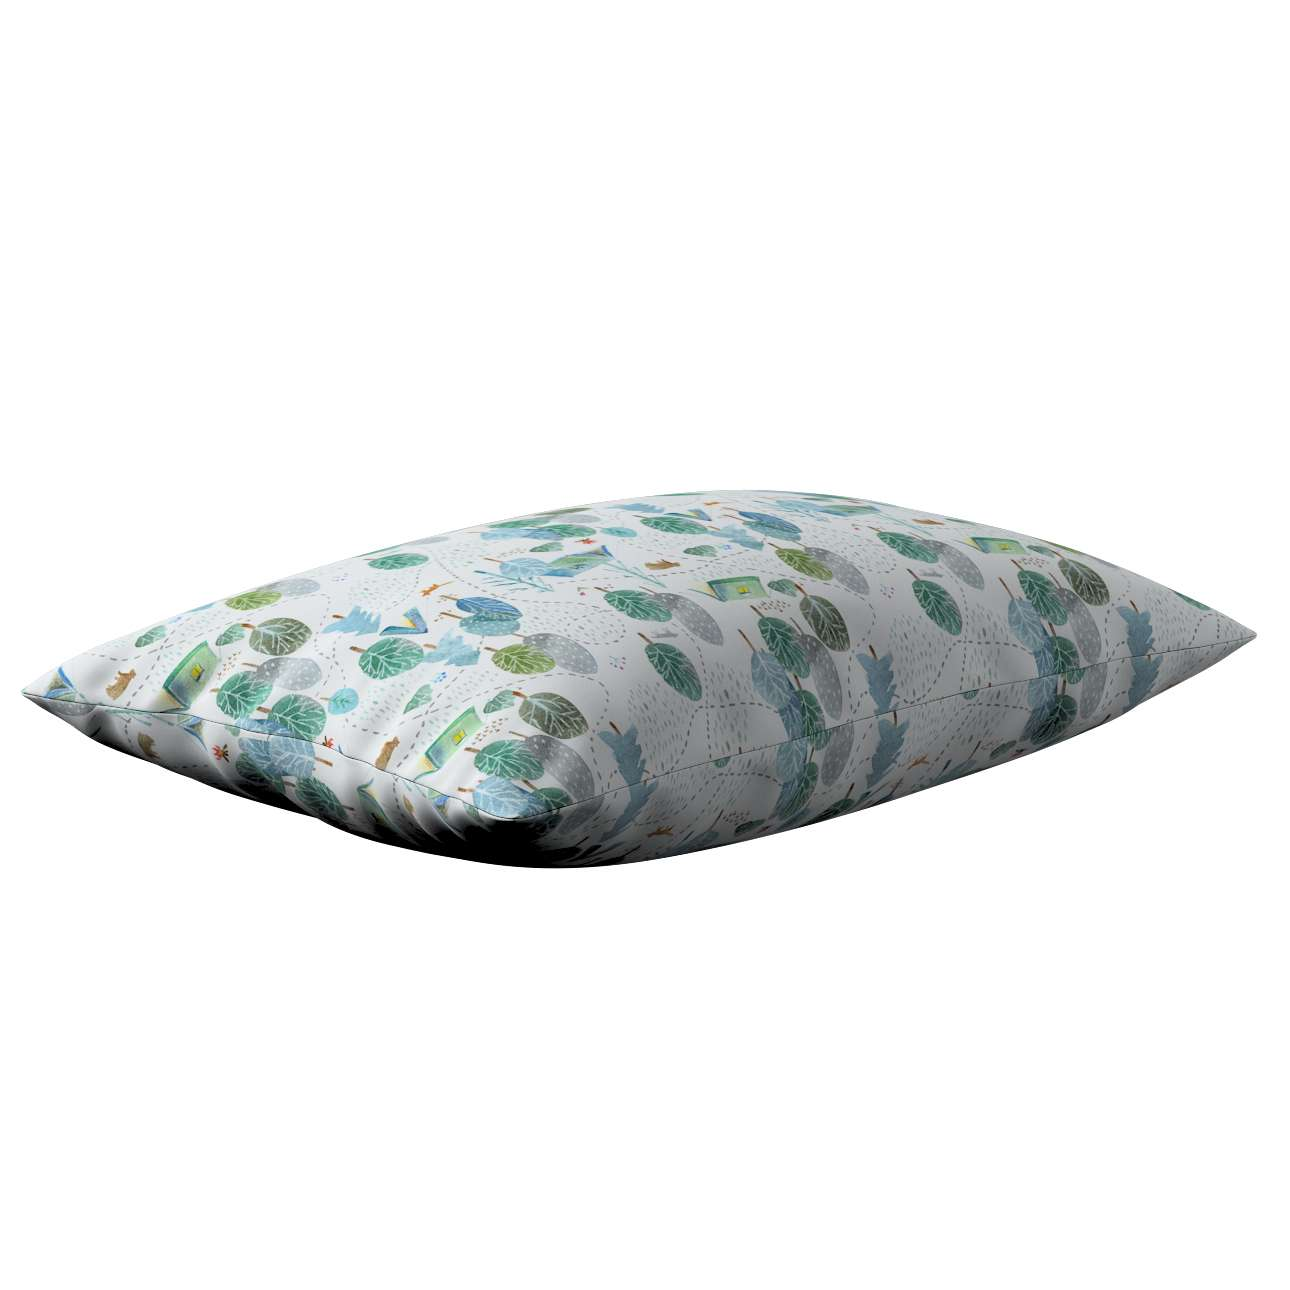 Milly rectangular cushion cover in collection Magic Collection, fabric: 500-21